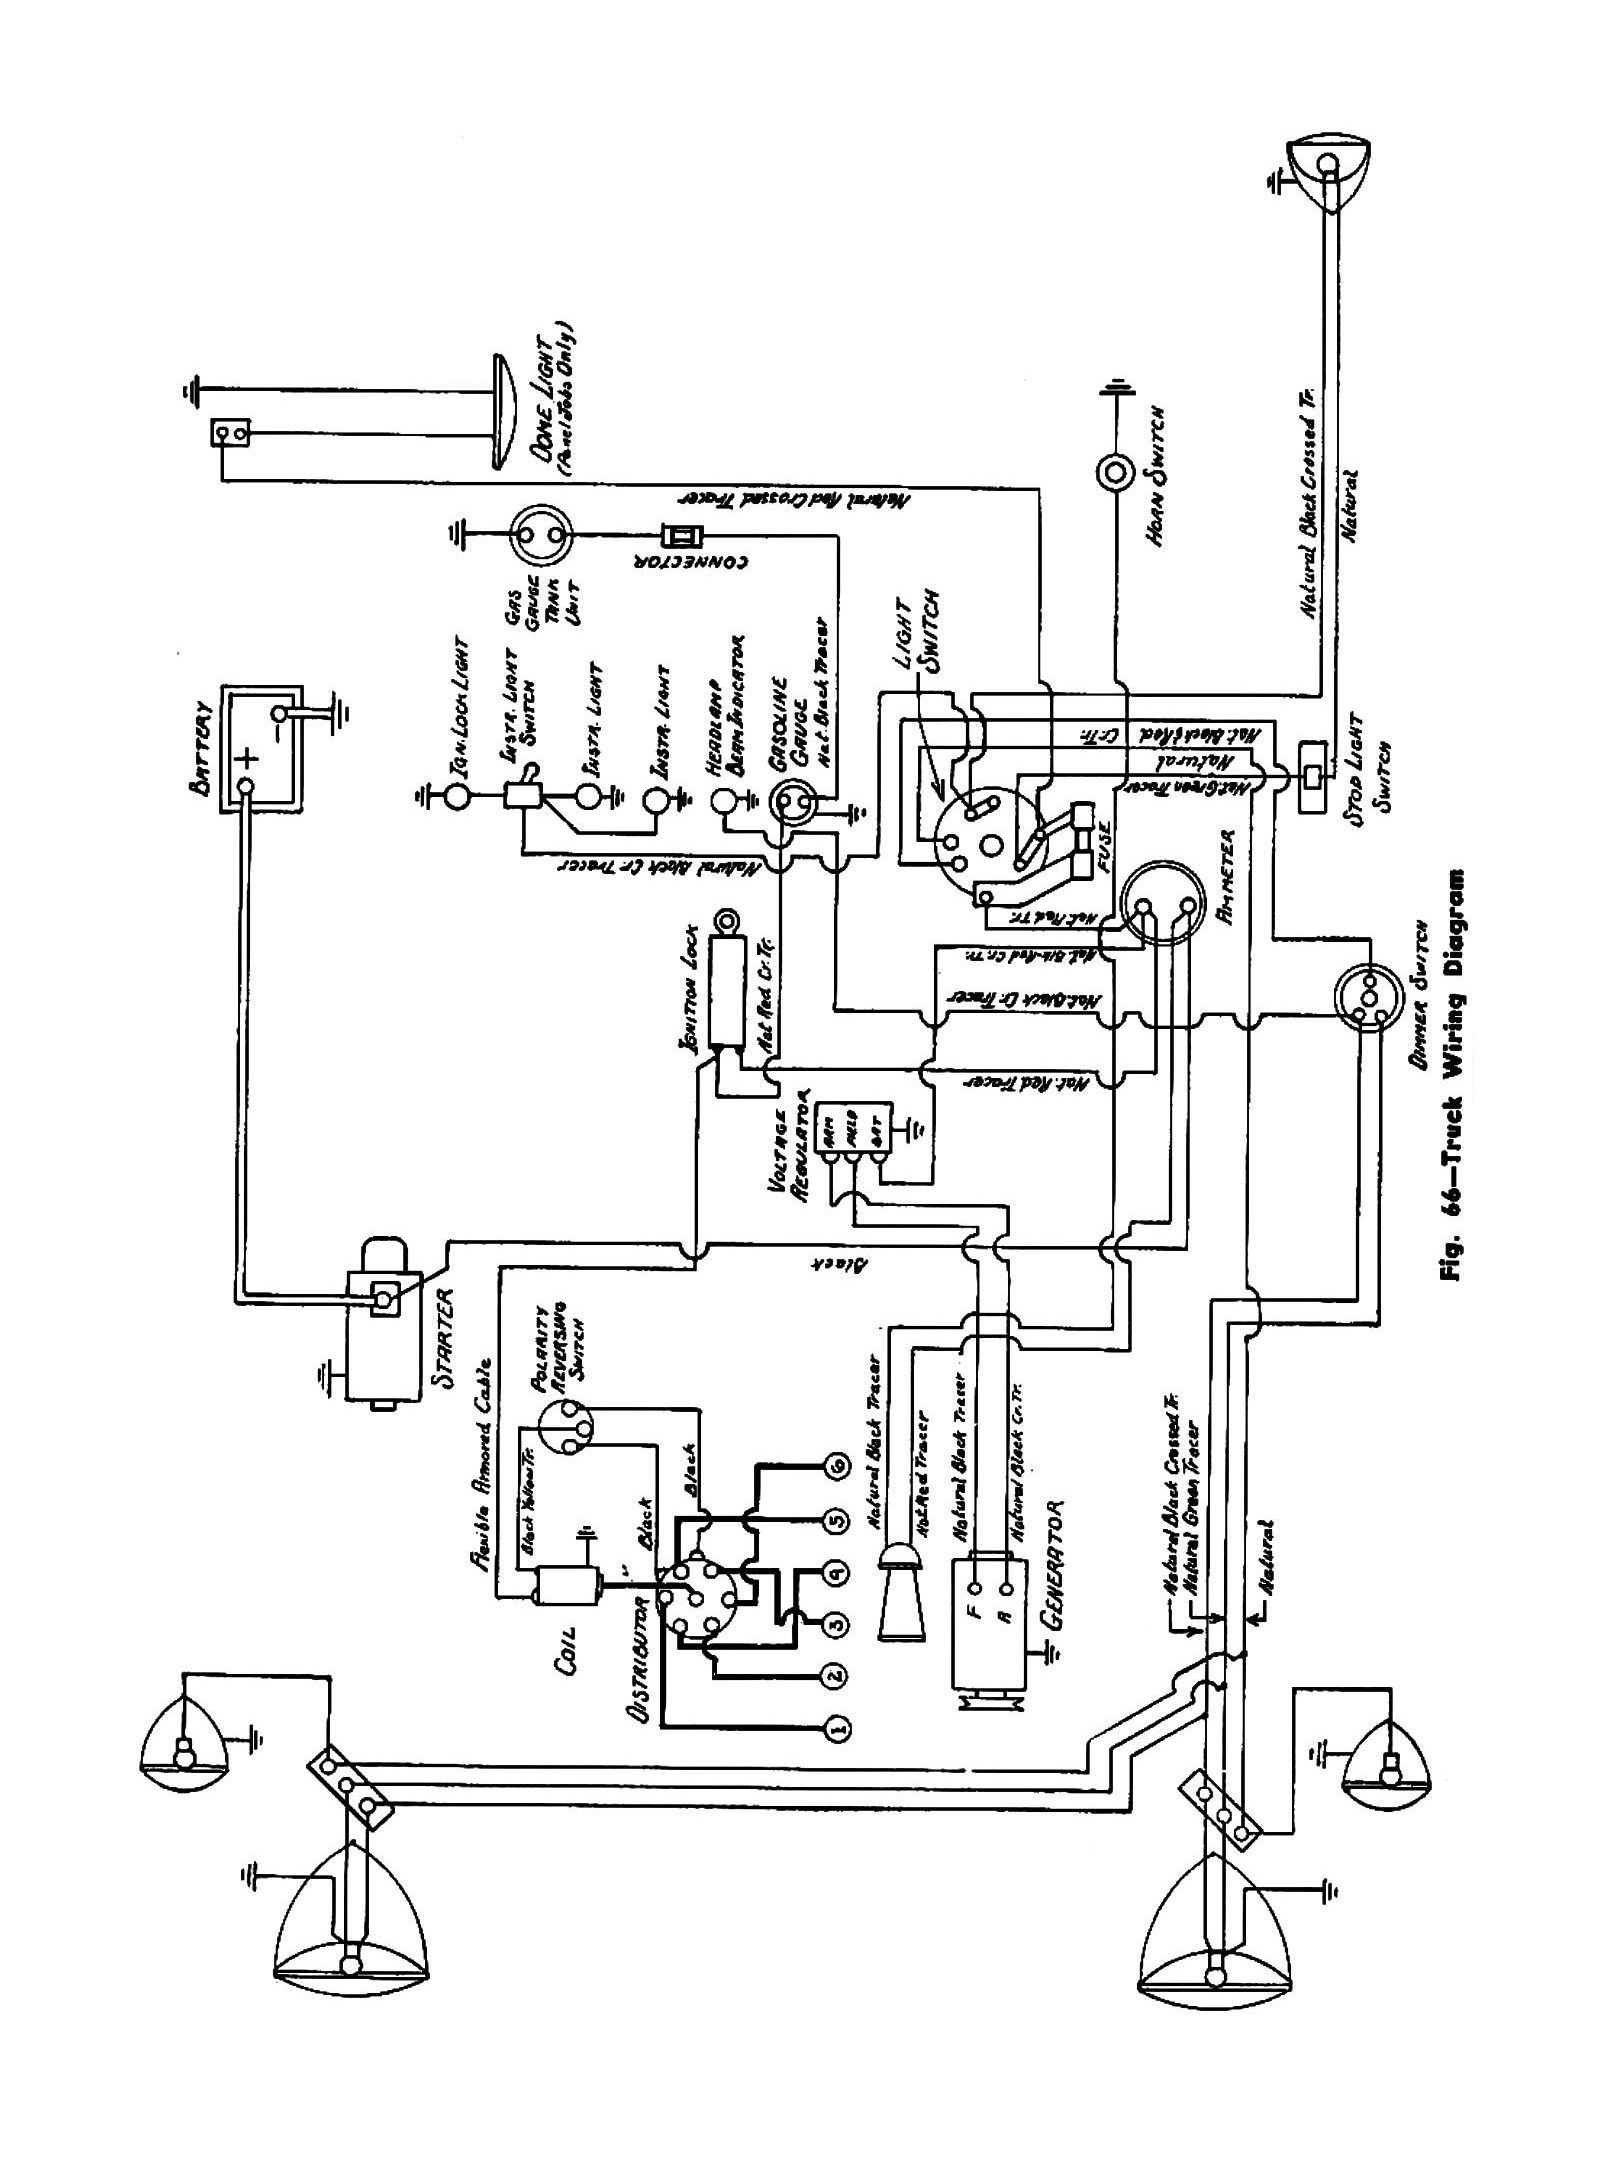 hight resolution of 1937 chevy wiring harness wiring diagram database chevy truck wiring harness diagram 1937 chevy wiring harness